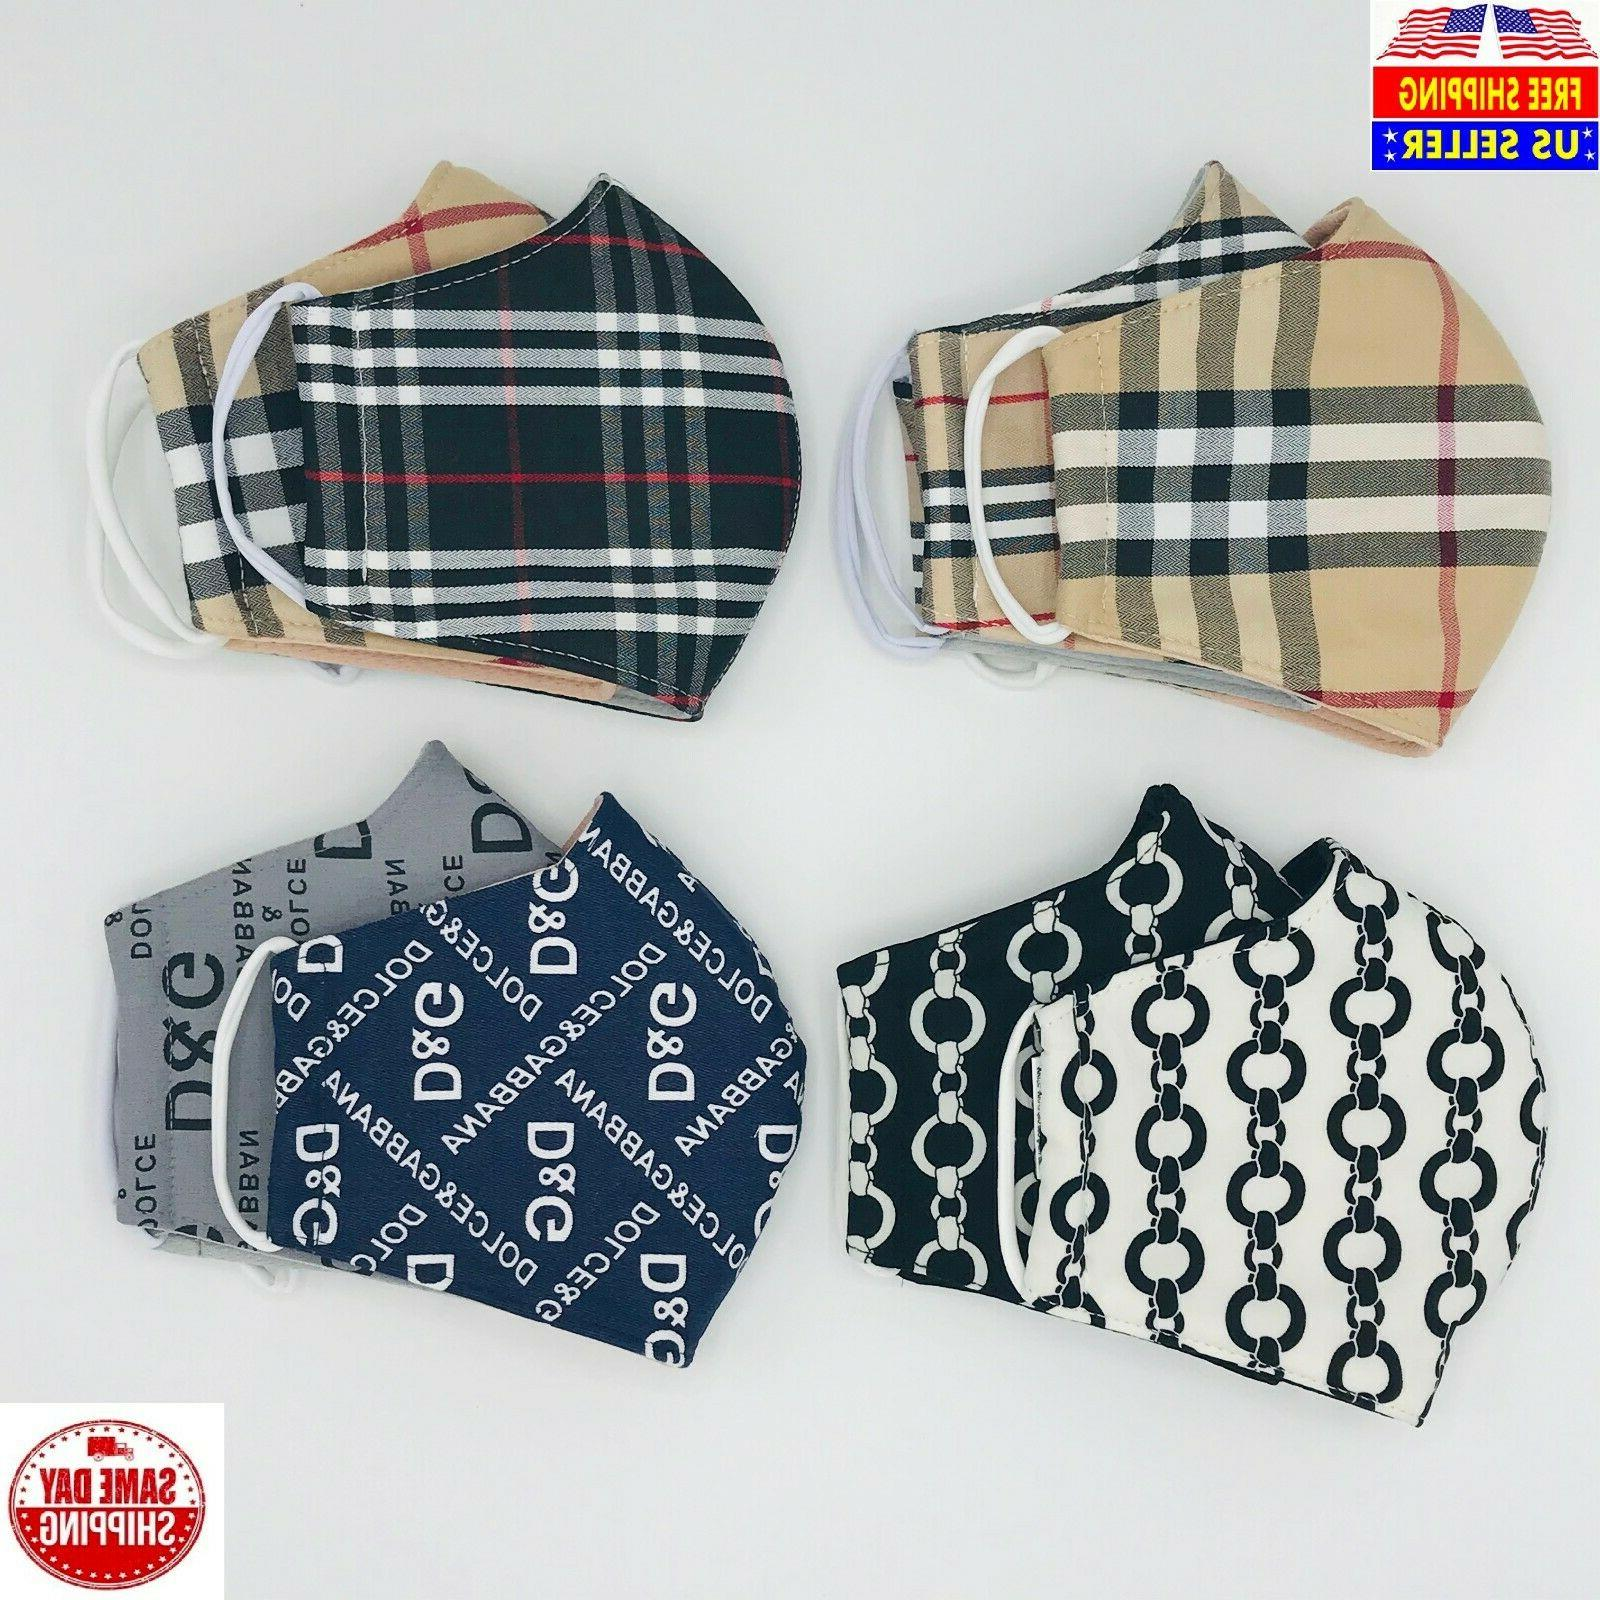 2 pack face masks unisex medium tartan